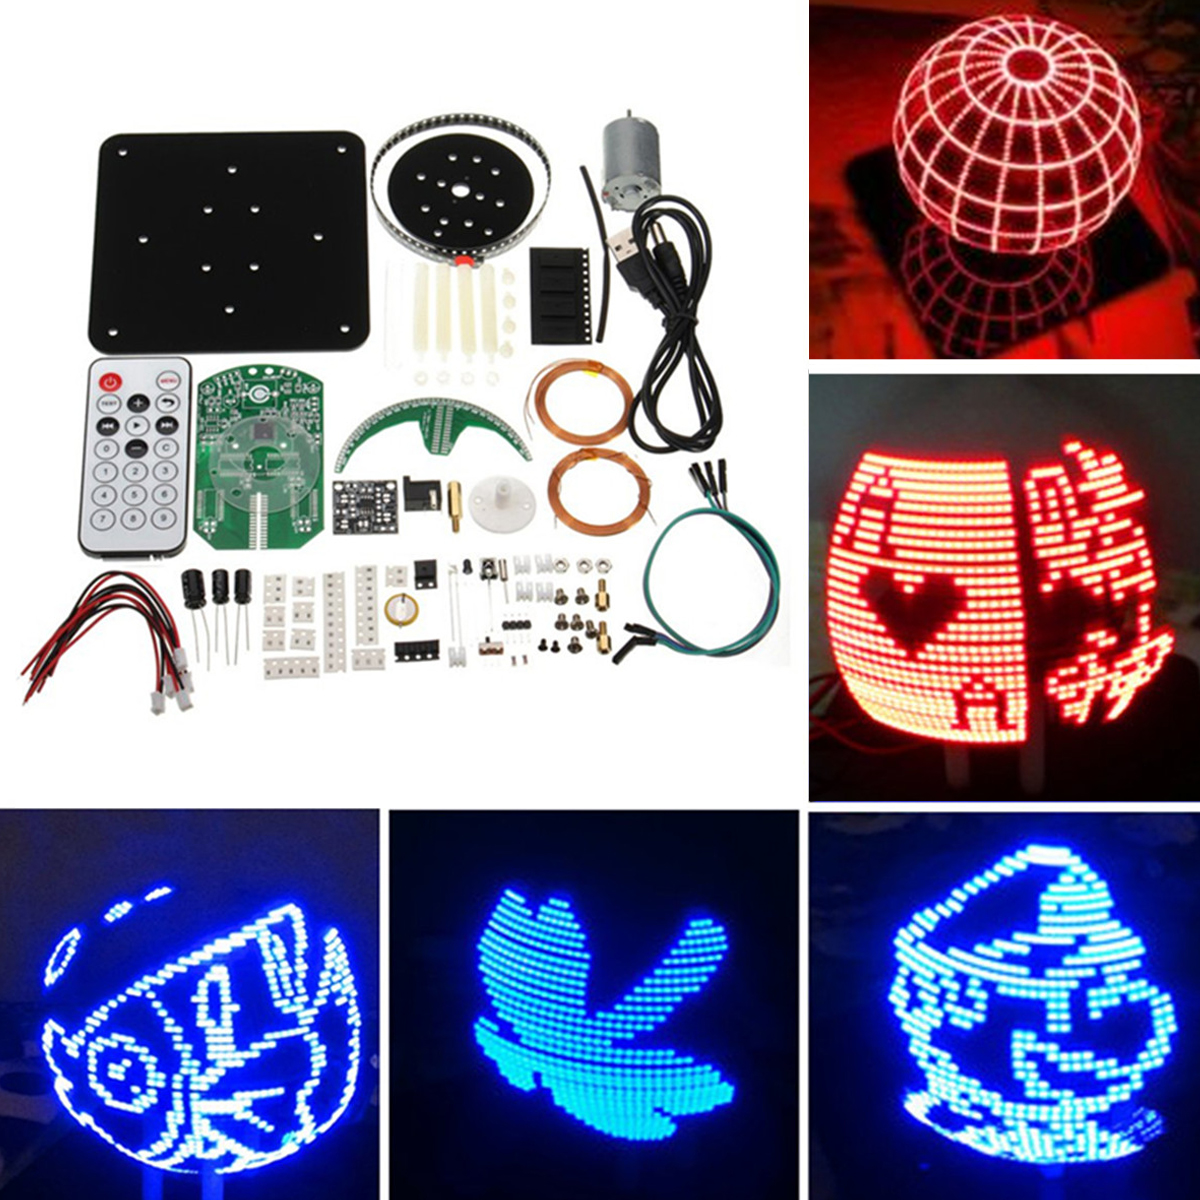 DIY Spherical Rotation LED Kit Lamp POV Welding Training Kit Romantic Rotary Clock Parts Blue and Red Colors Available ball pov spherical rotary led kit 56 lamp pov rotating clock parts diy electronic welding kit rotating lamp